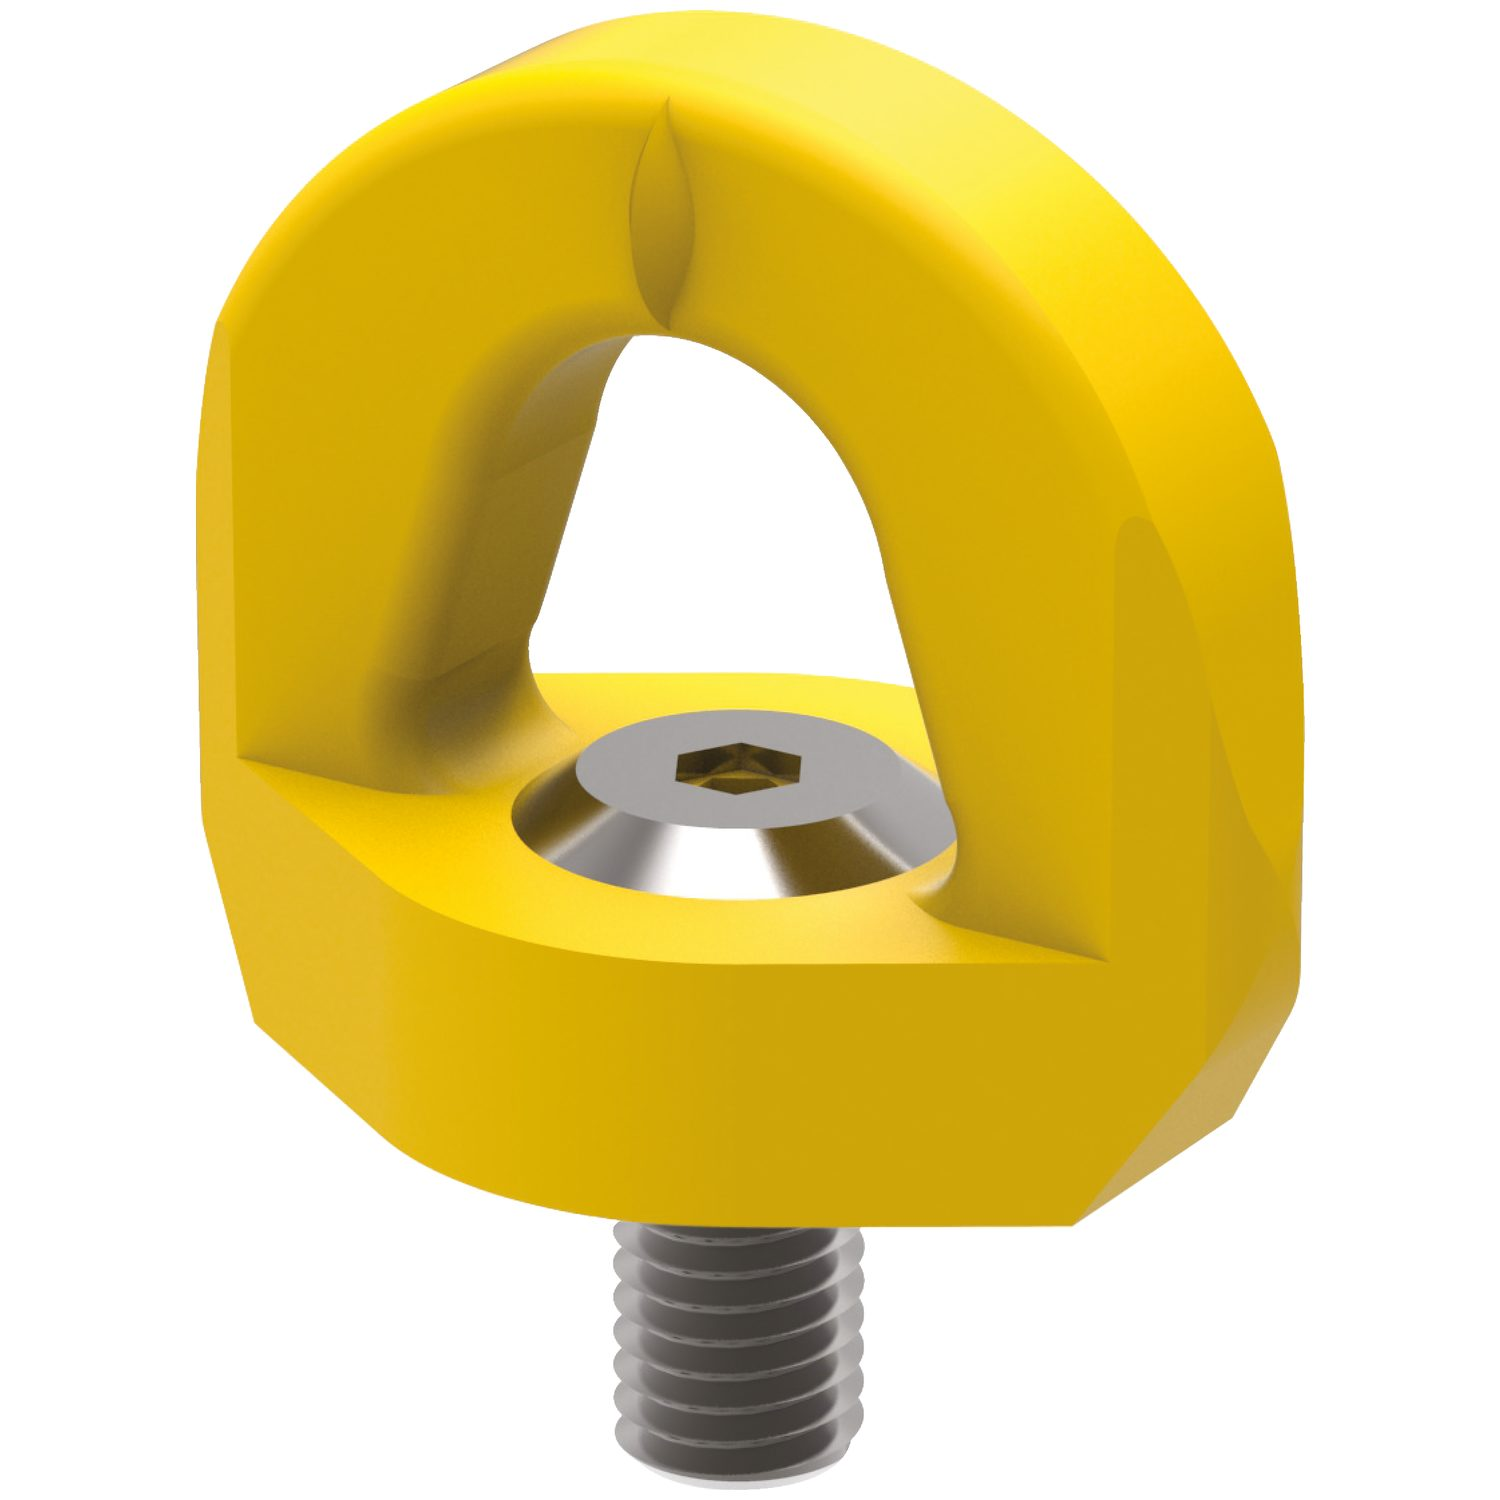 Fall Arrest Swivel Rings Fall arrest swivel shackles - for personal safety.